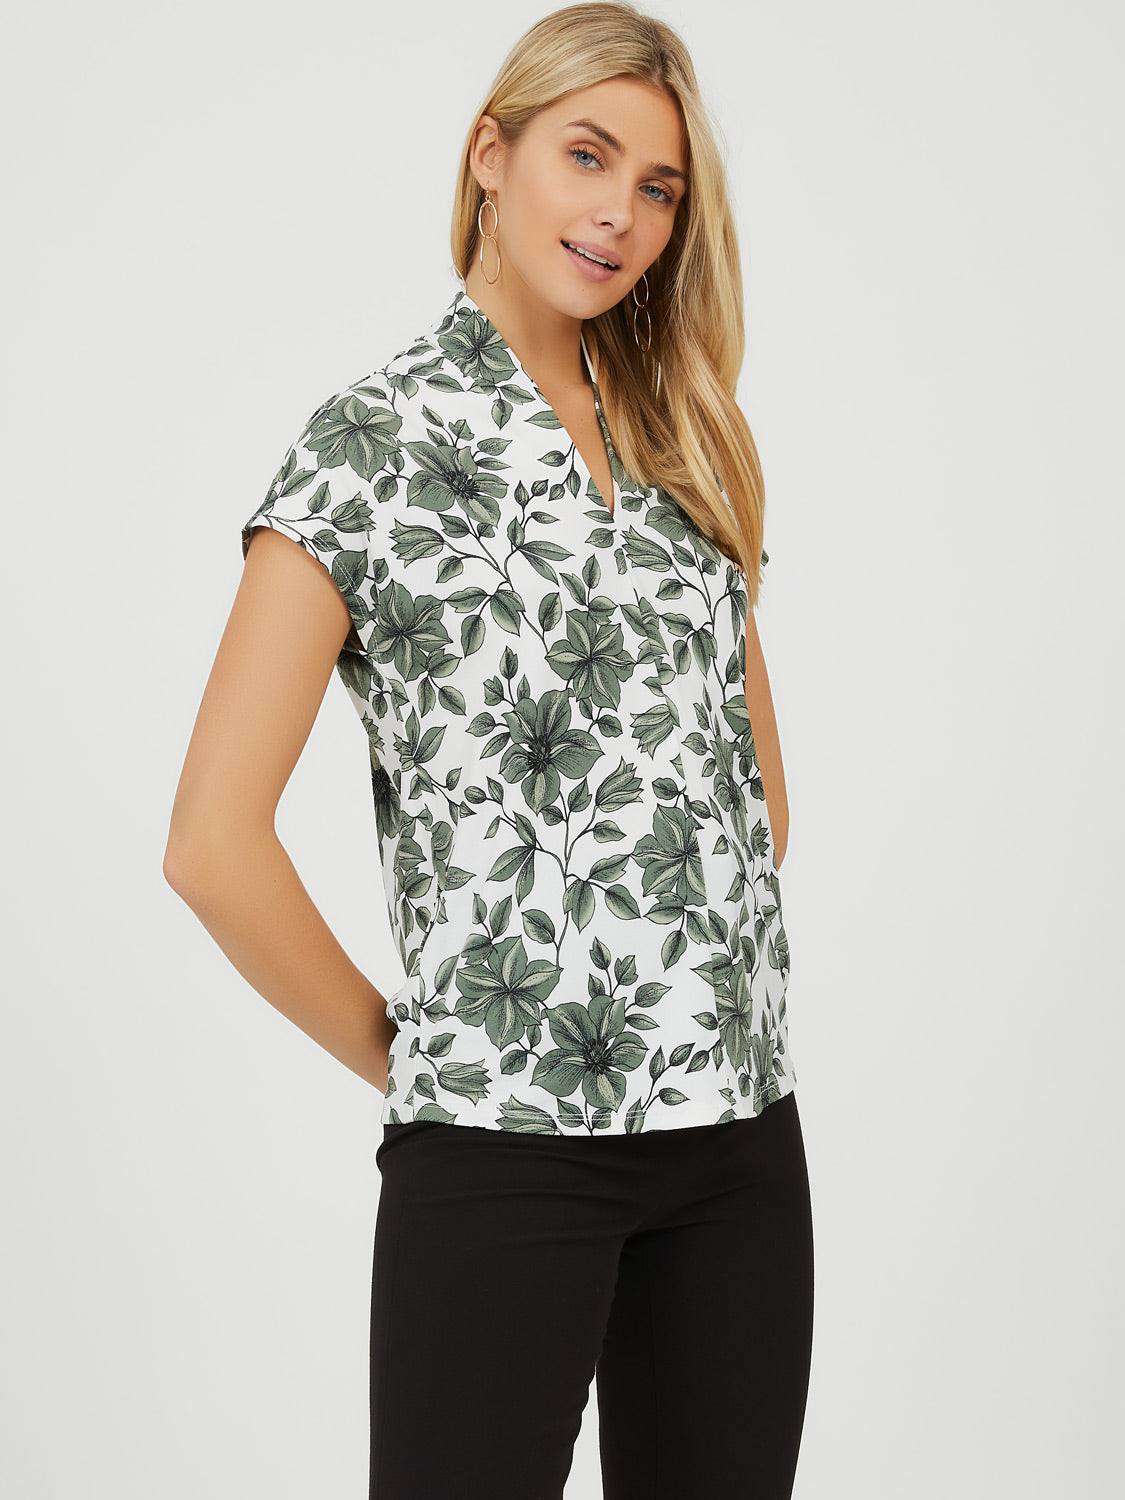 Pleated Crepe Knit Floral Top